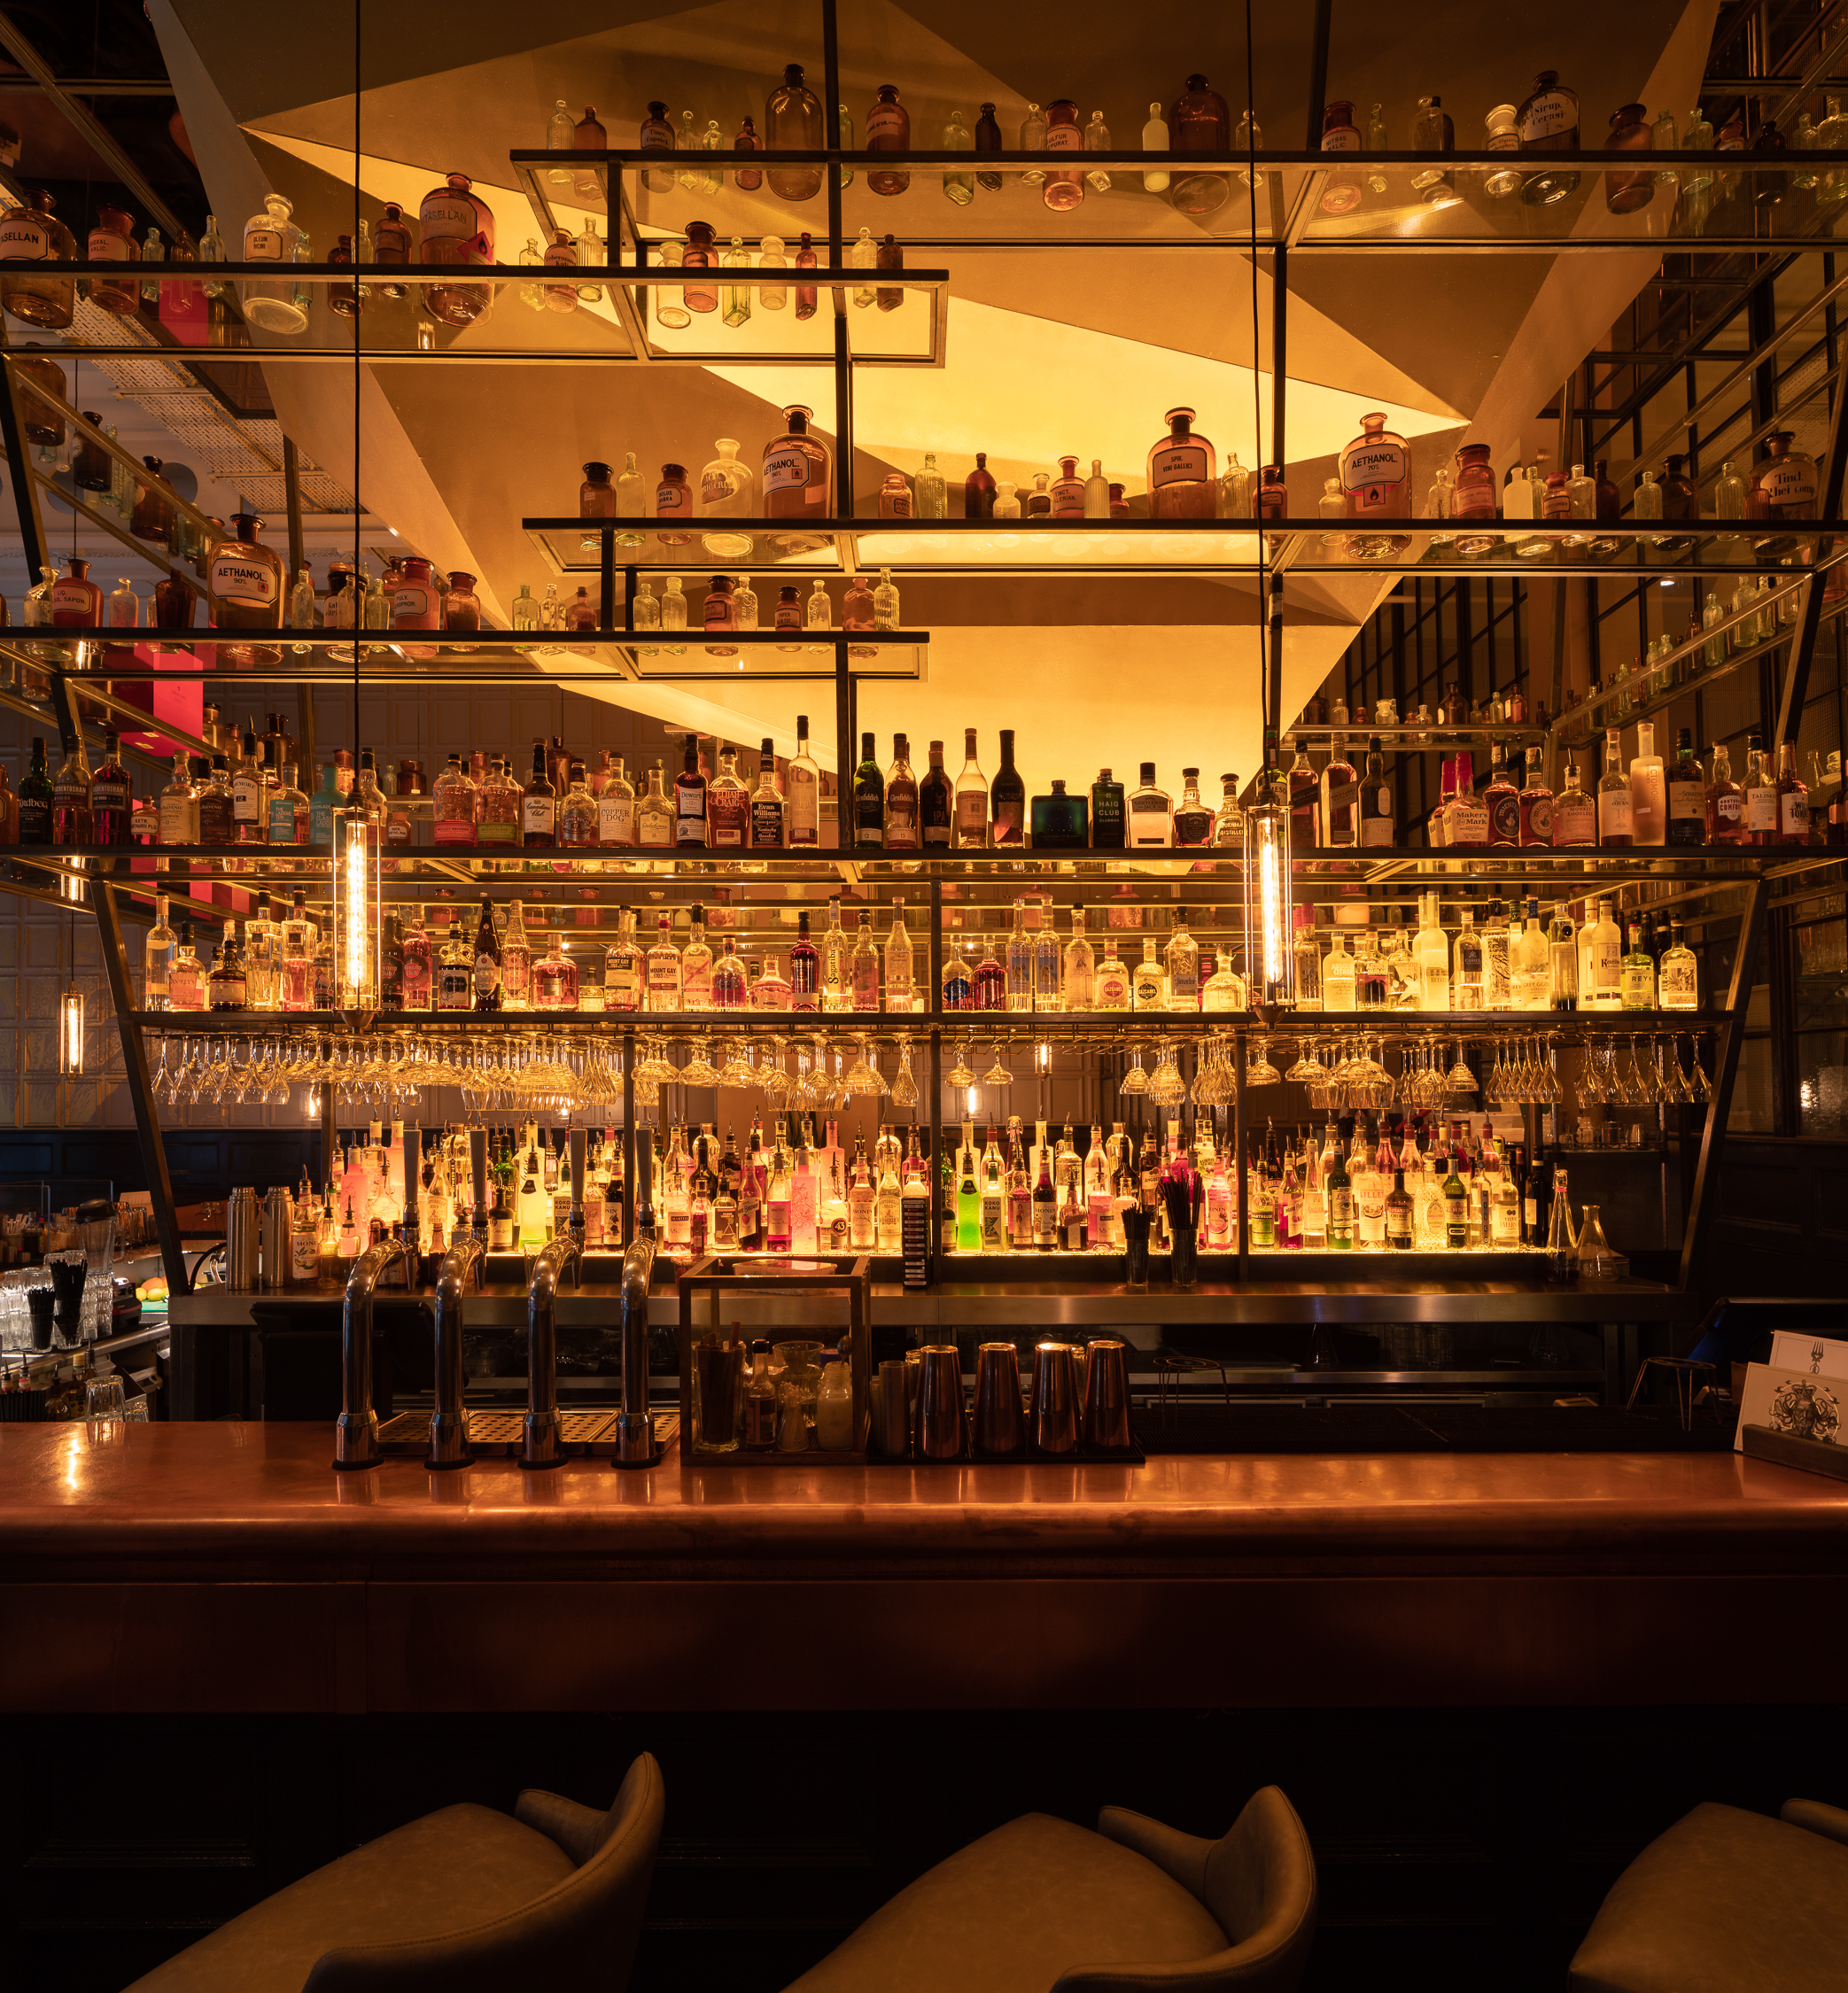 The Alchemist London - Bevis Marks